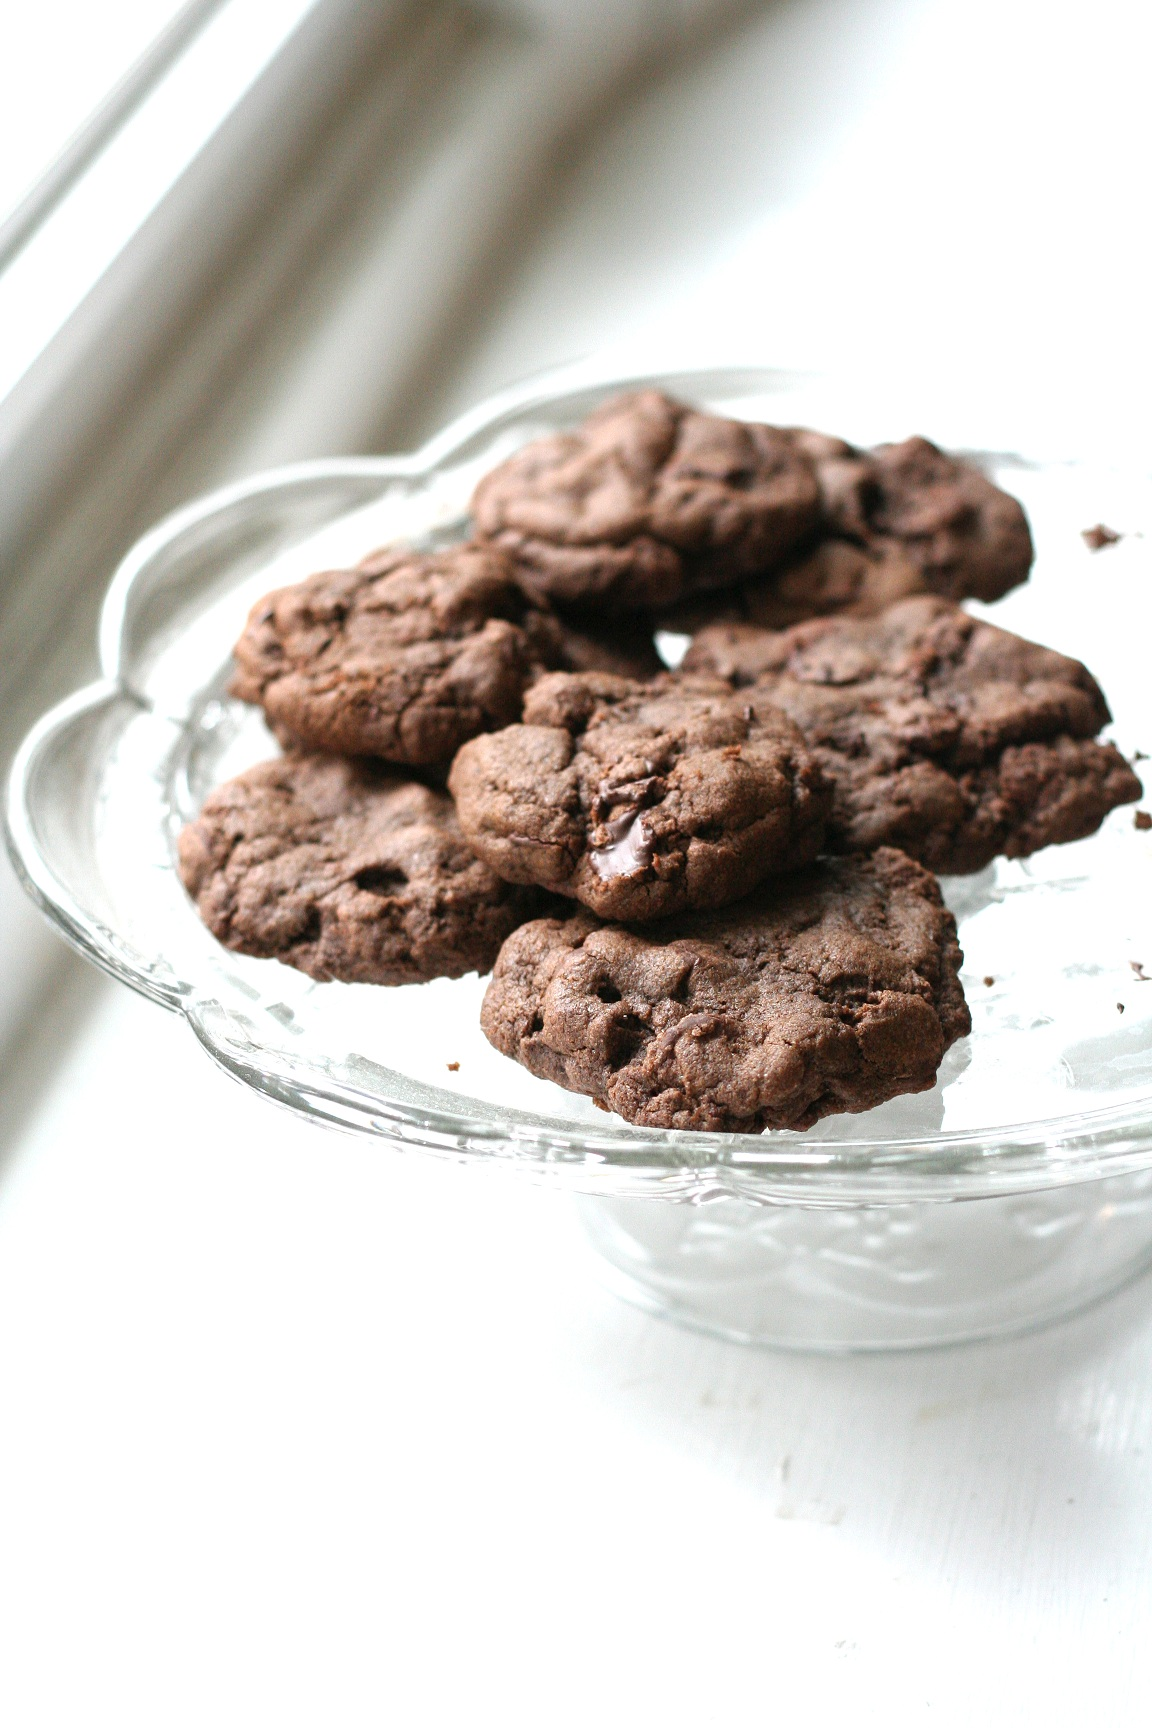 A double chocolate chip cookie recipe